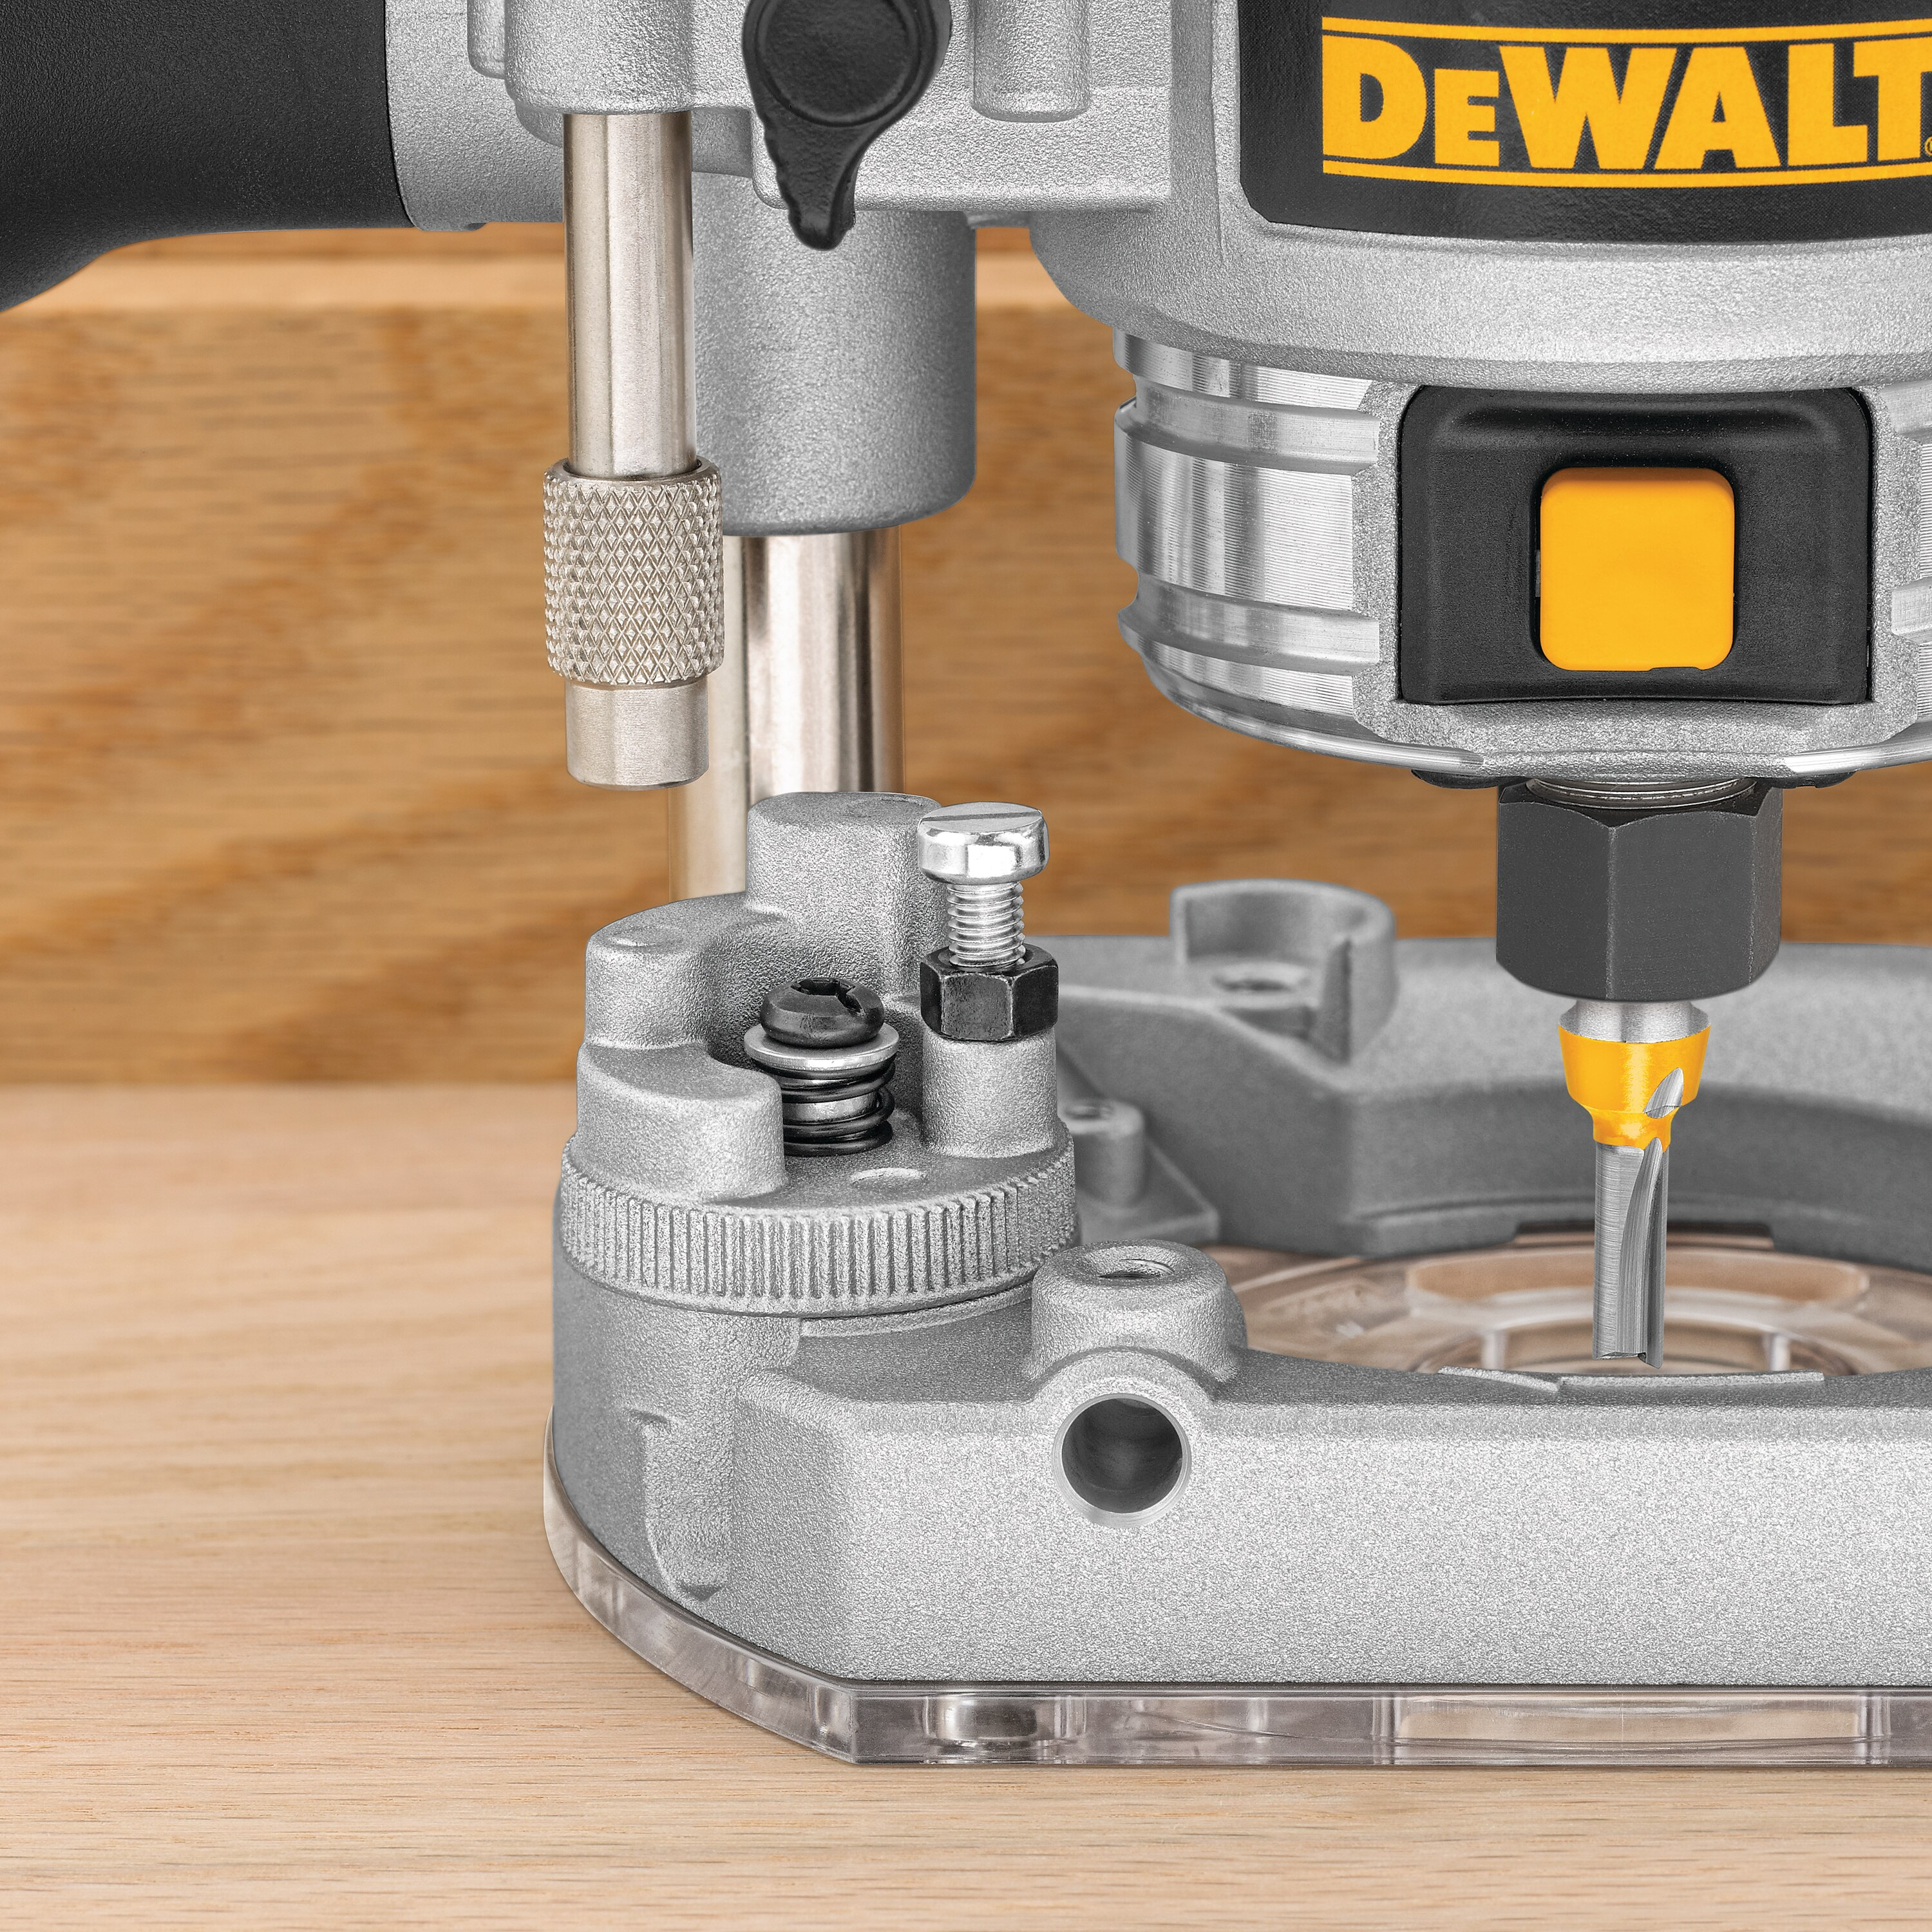 DEWALT DWP611 1.25 HP Max Torque Variable Speed Compact Router with LEDs with Round Sub Base for Compact Router